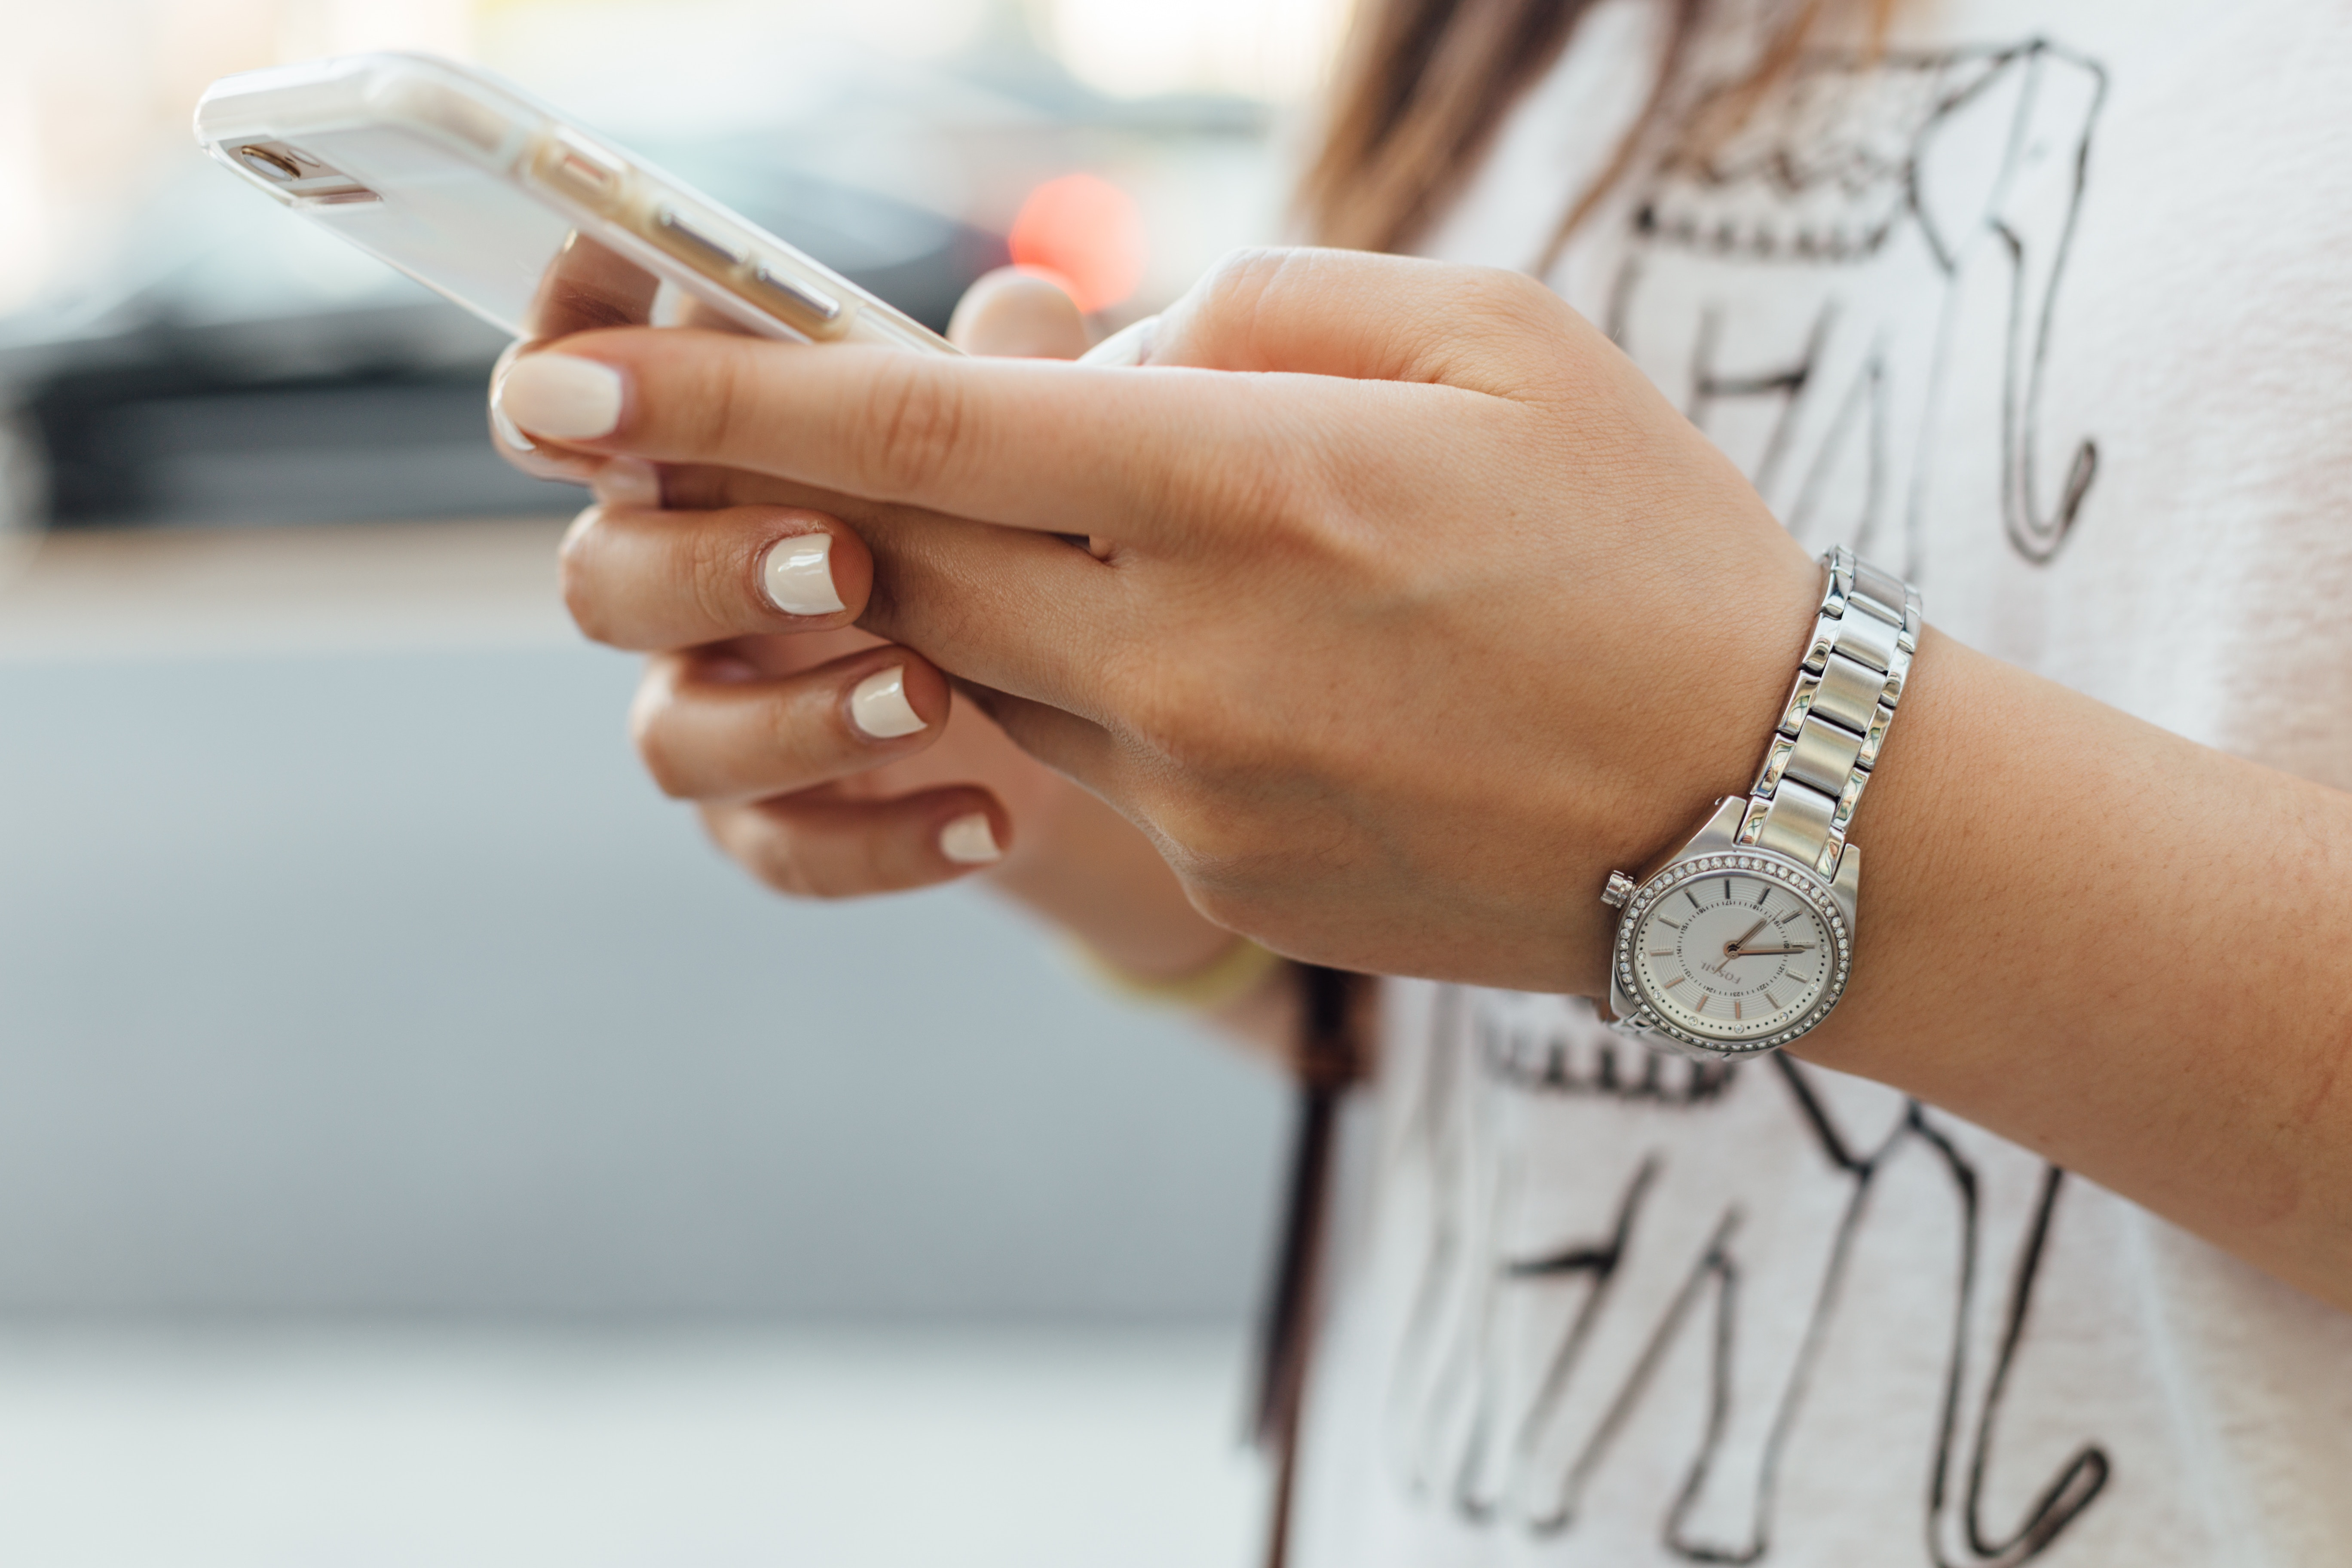 A woman with white nail polish holds a cell phone closeup shot